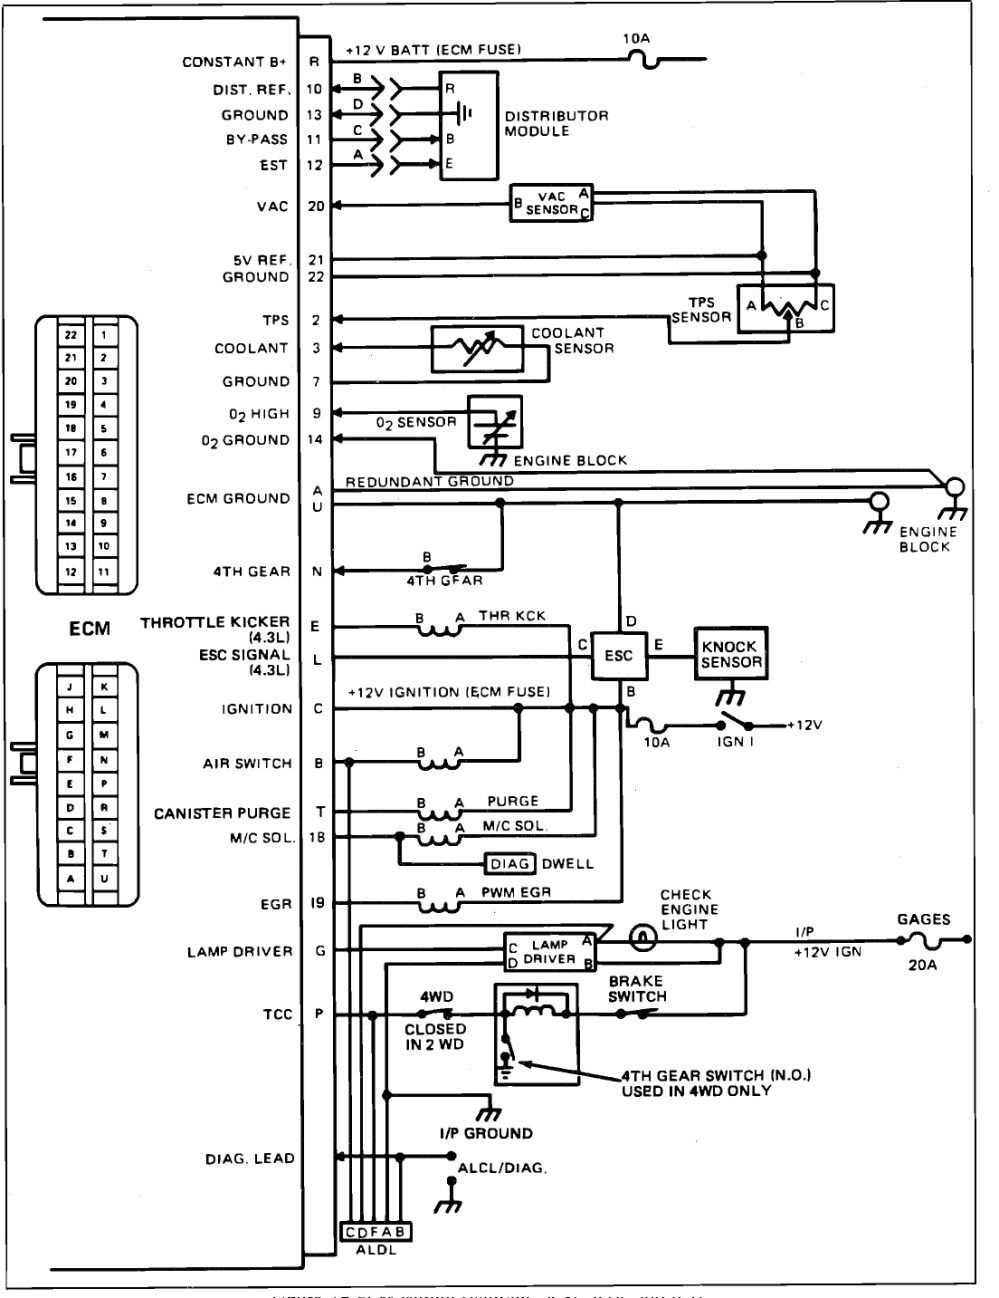 medium resolution of 1986 chevy fuse box diagram wiring schematic simple wiring diagram rh 8 1 1 mara cujas de 2000 monte carlo fuse box diagram 2004 monte carlo fuse box